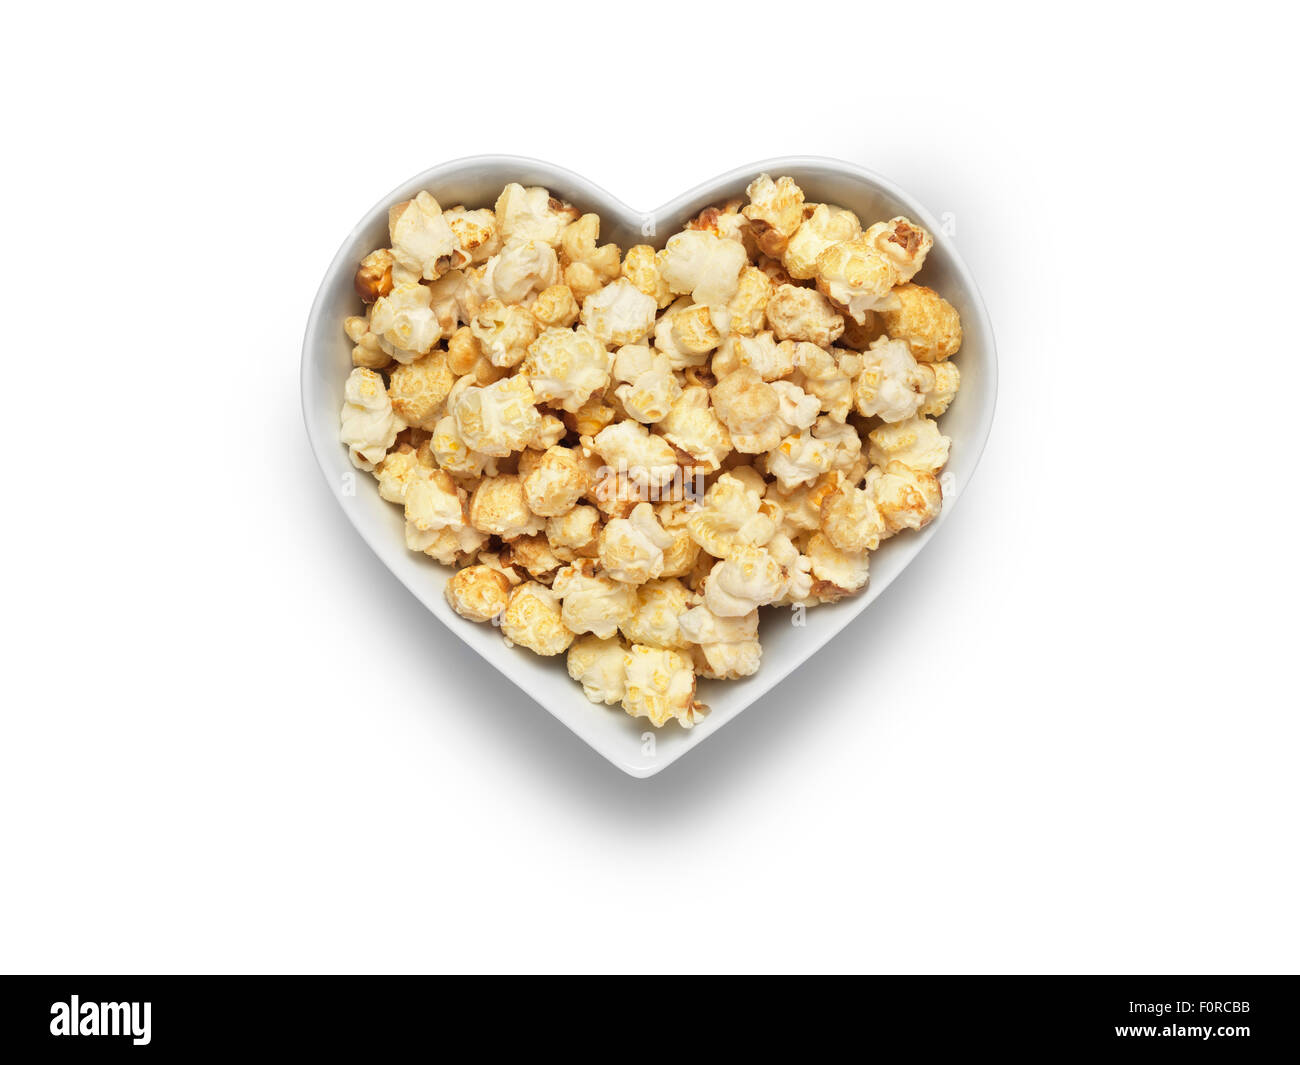 Shot of cinema style popcorn in a heart shaped bowl isolated on a white background with a clipping path and copy space for the d Stock Photo